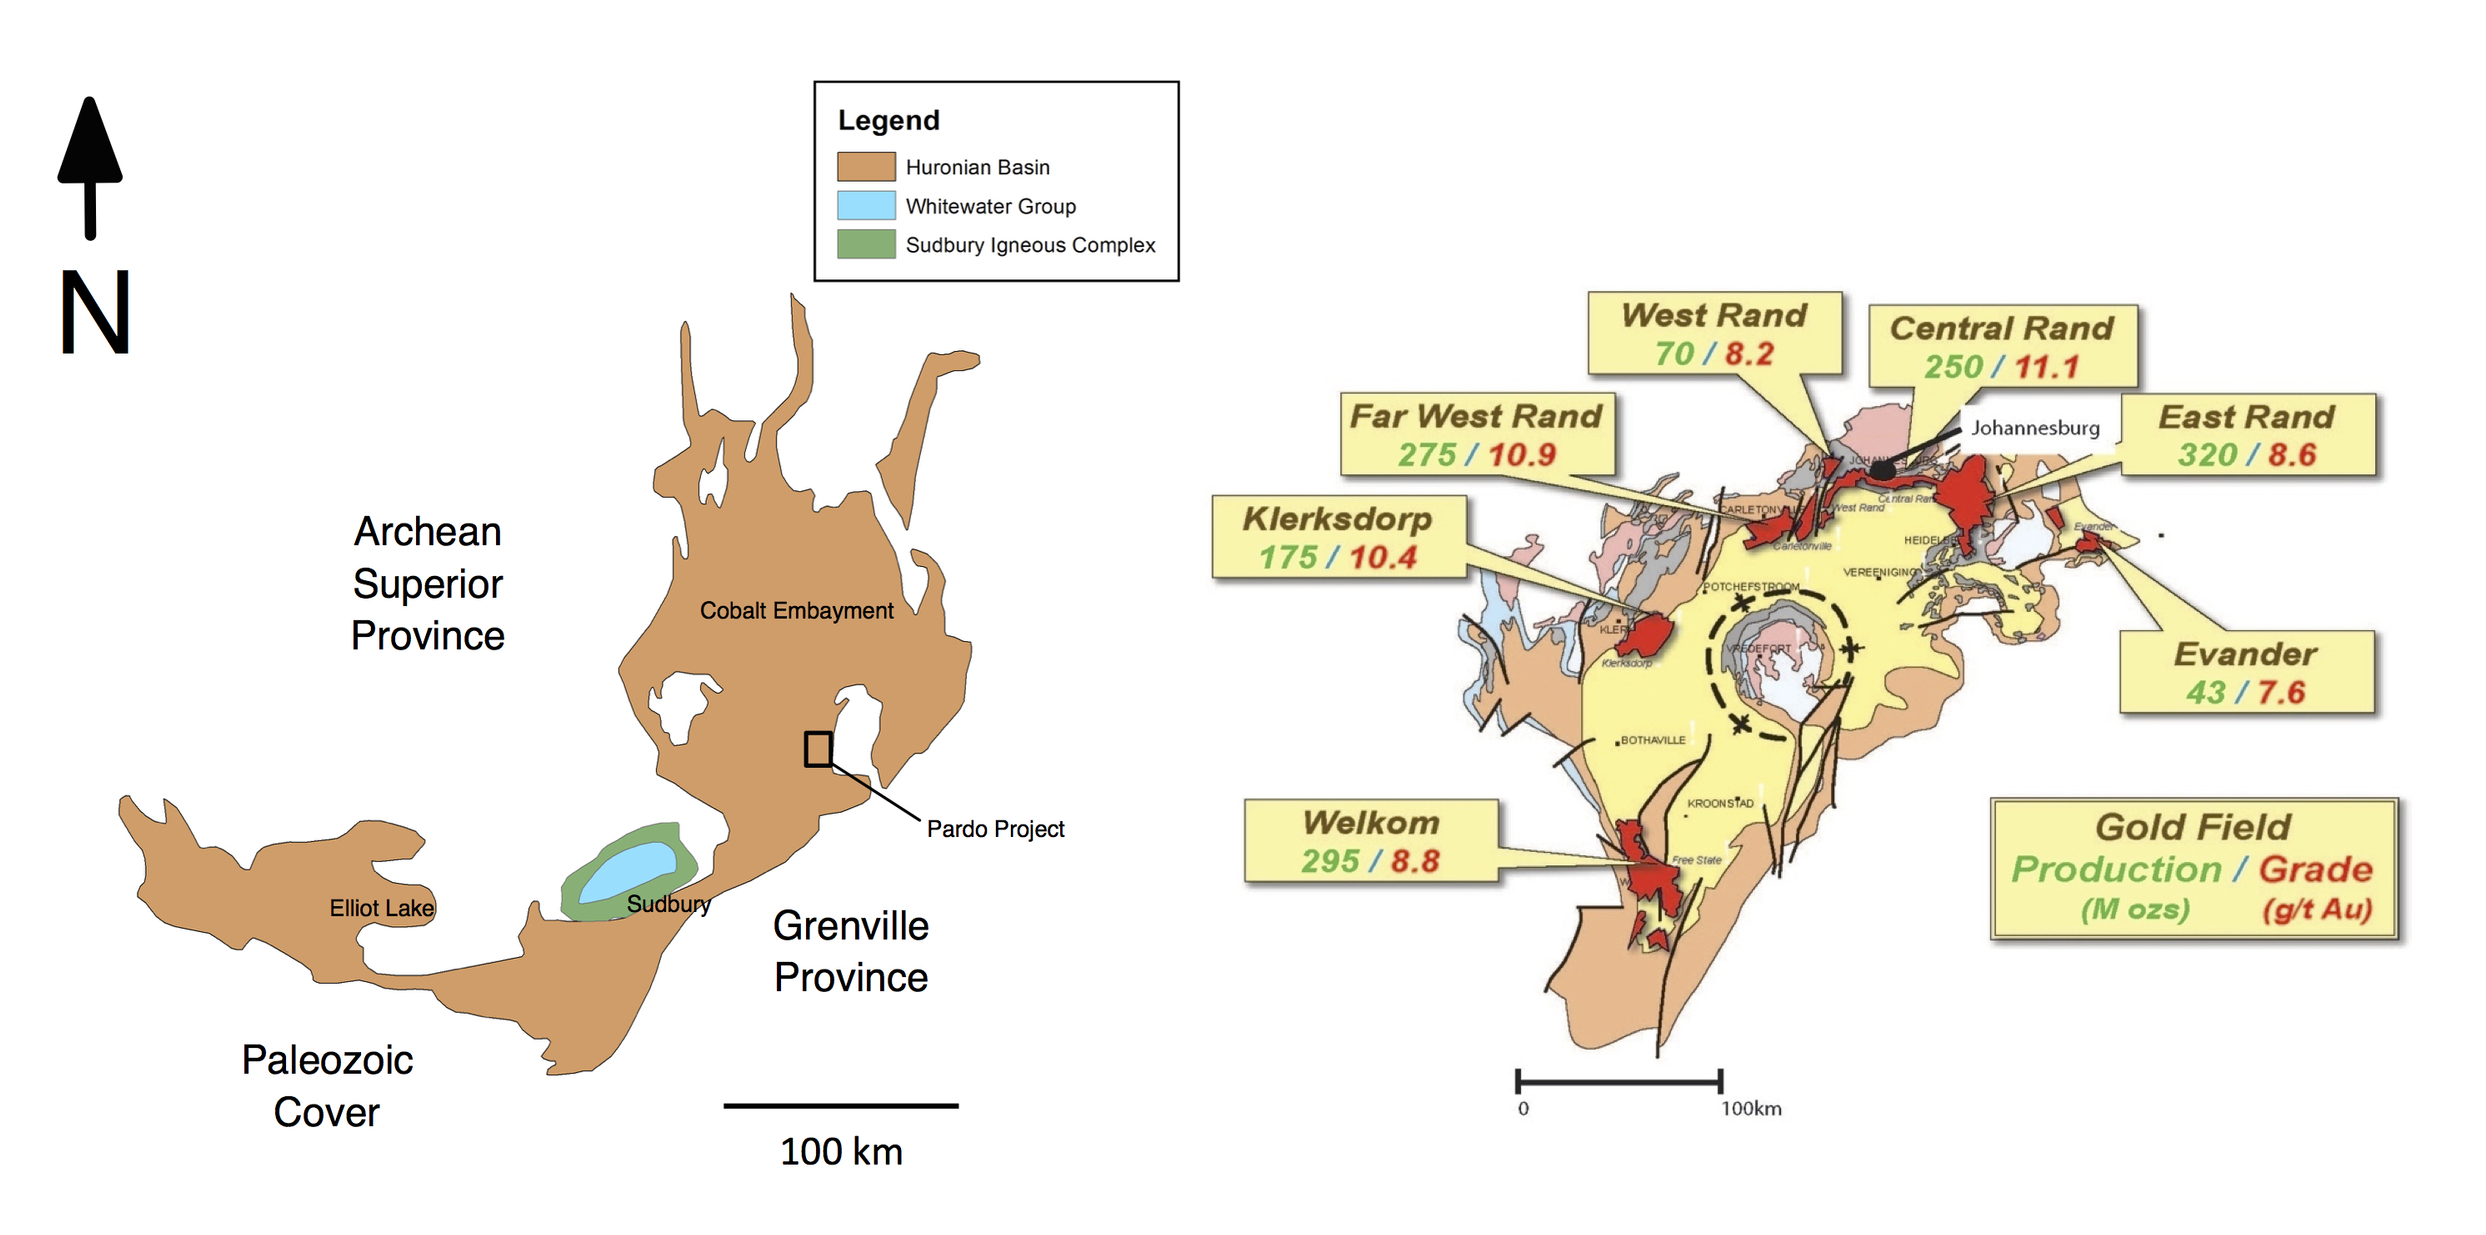 Figure 3. Size comparison between the Huronian (left) and Witwatersrand basin (right).